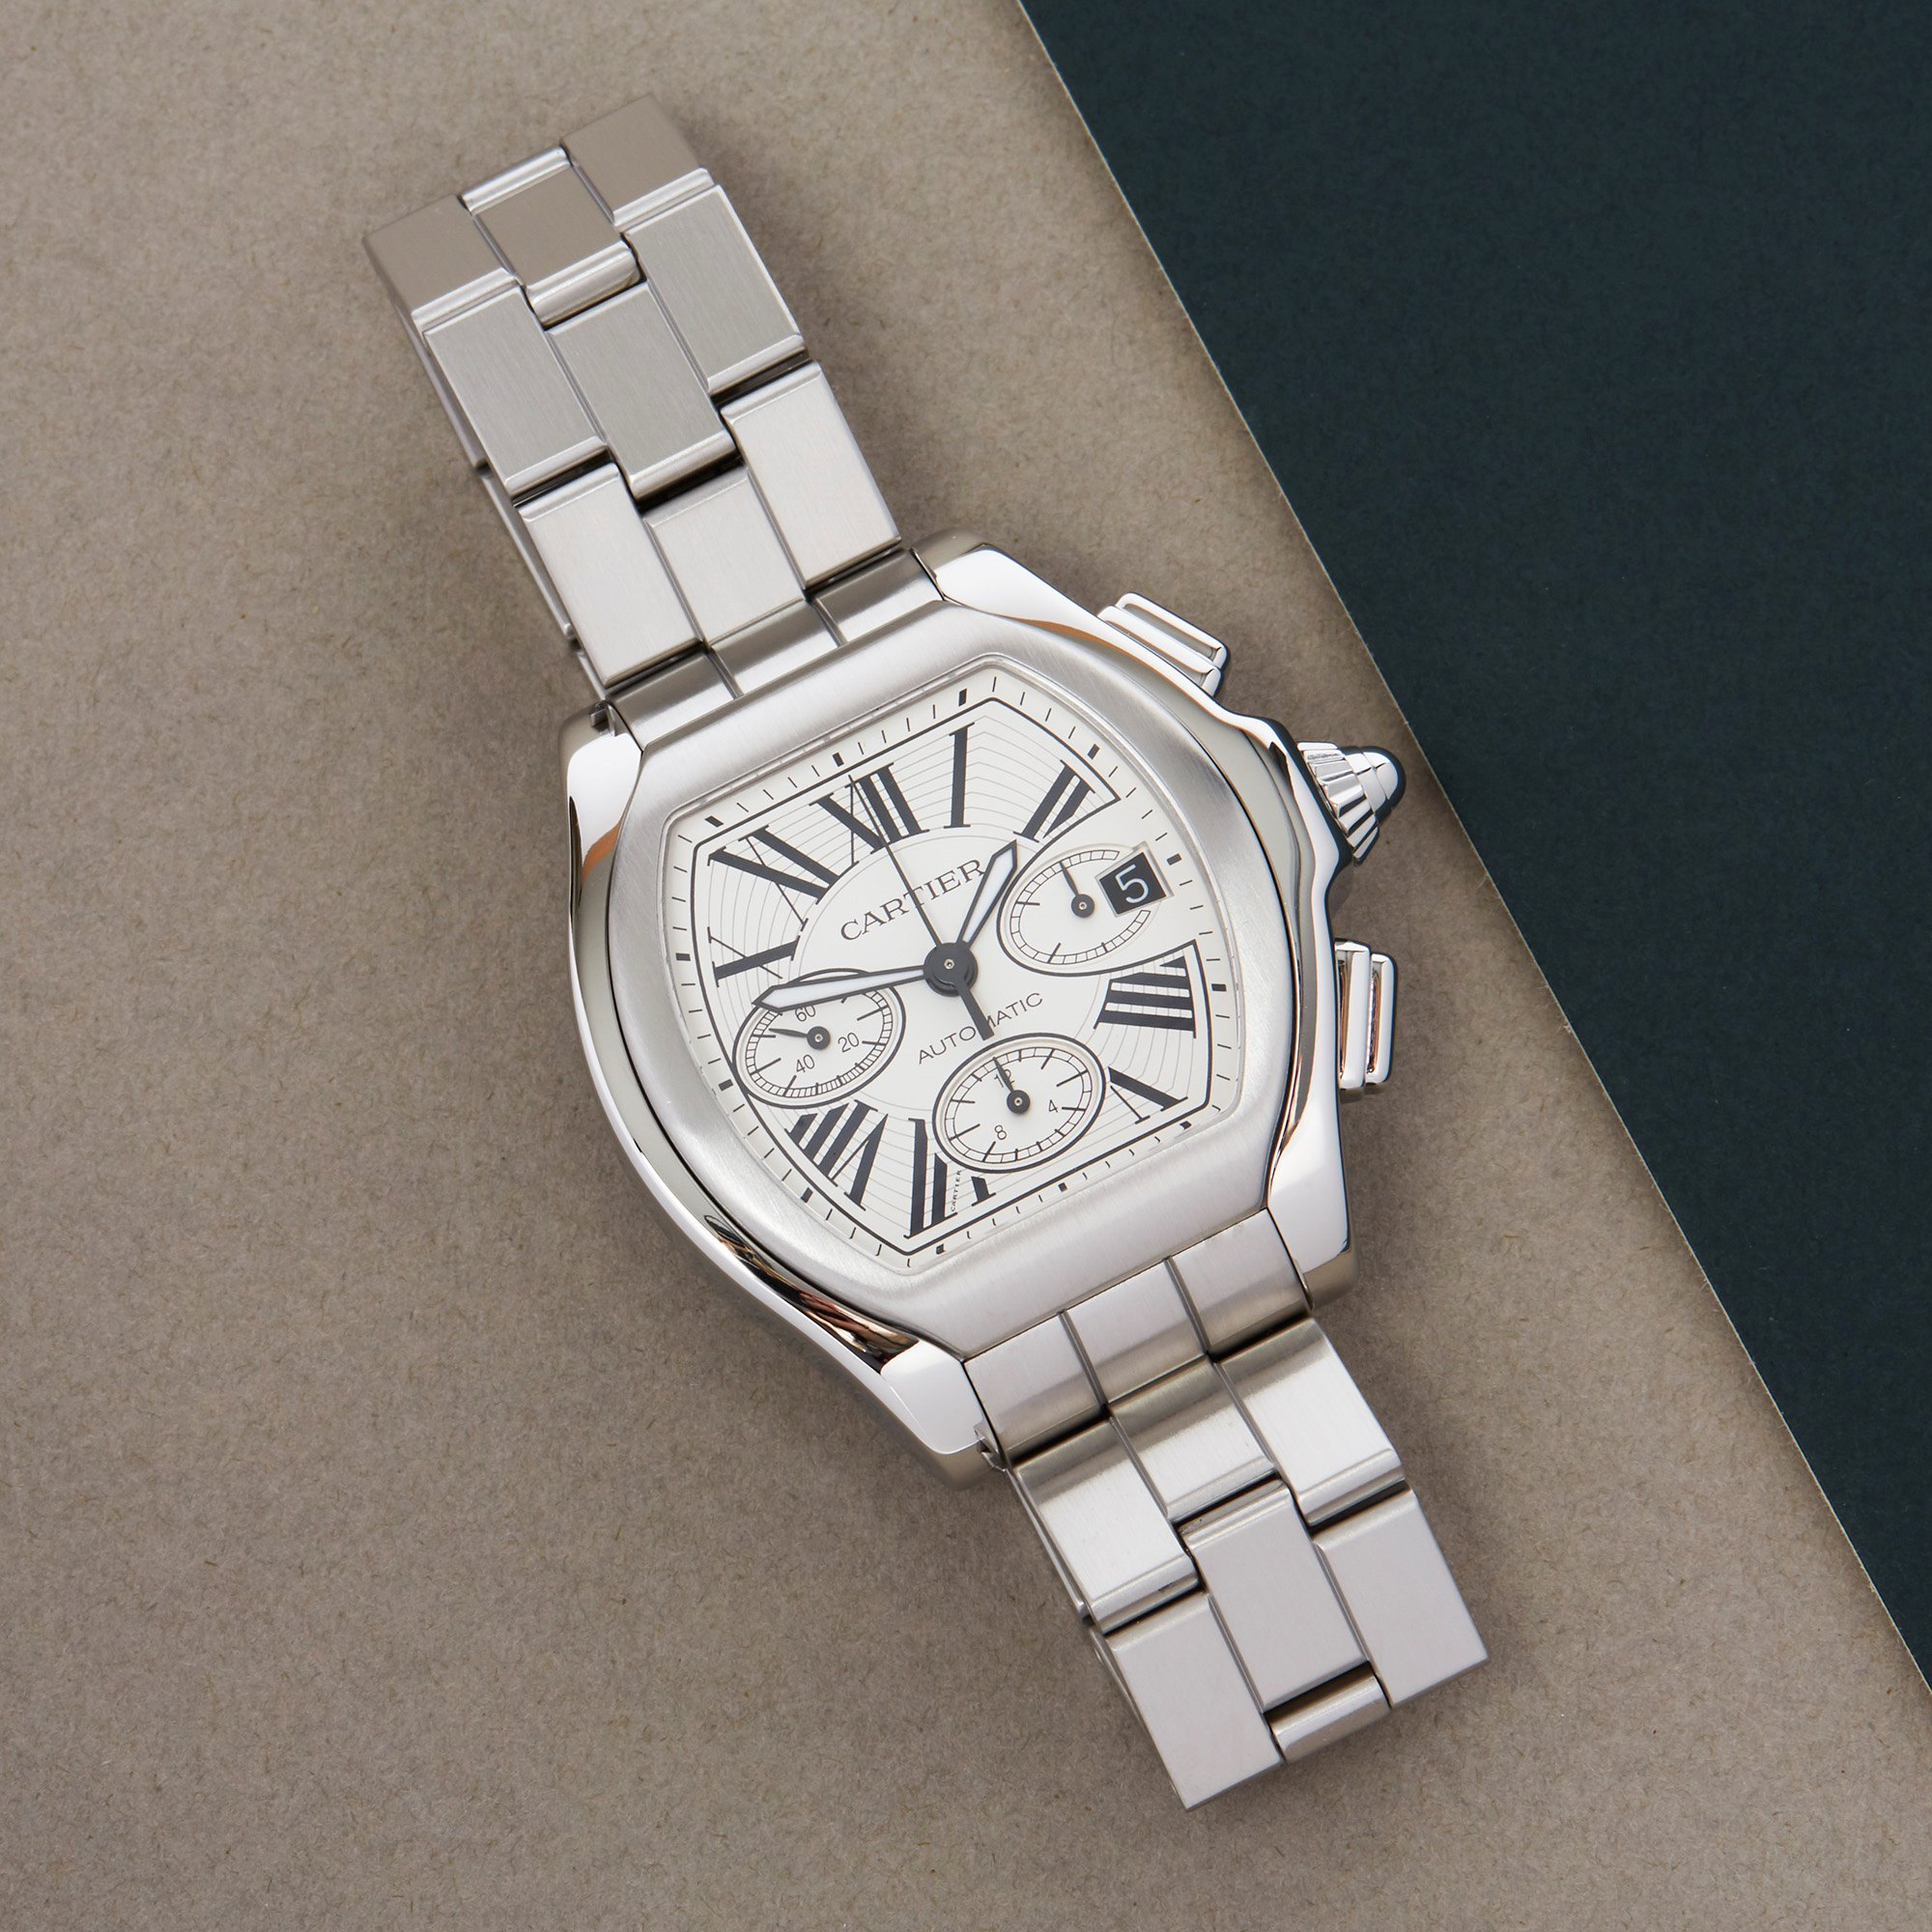 Cartier Roadster XL Chronograph Roestvrij Staal W6206019 or 3405